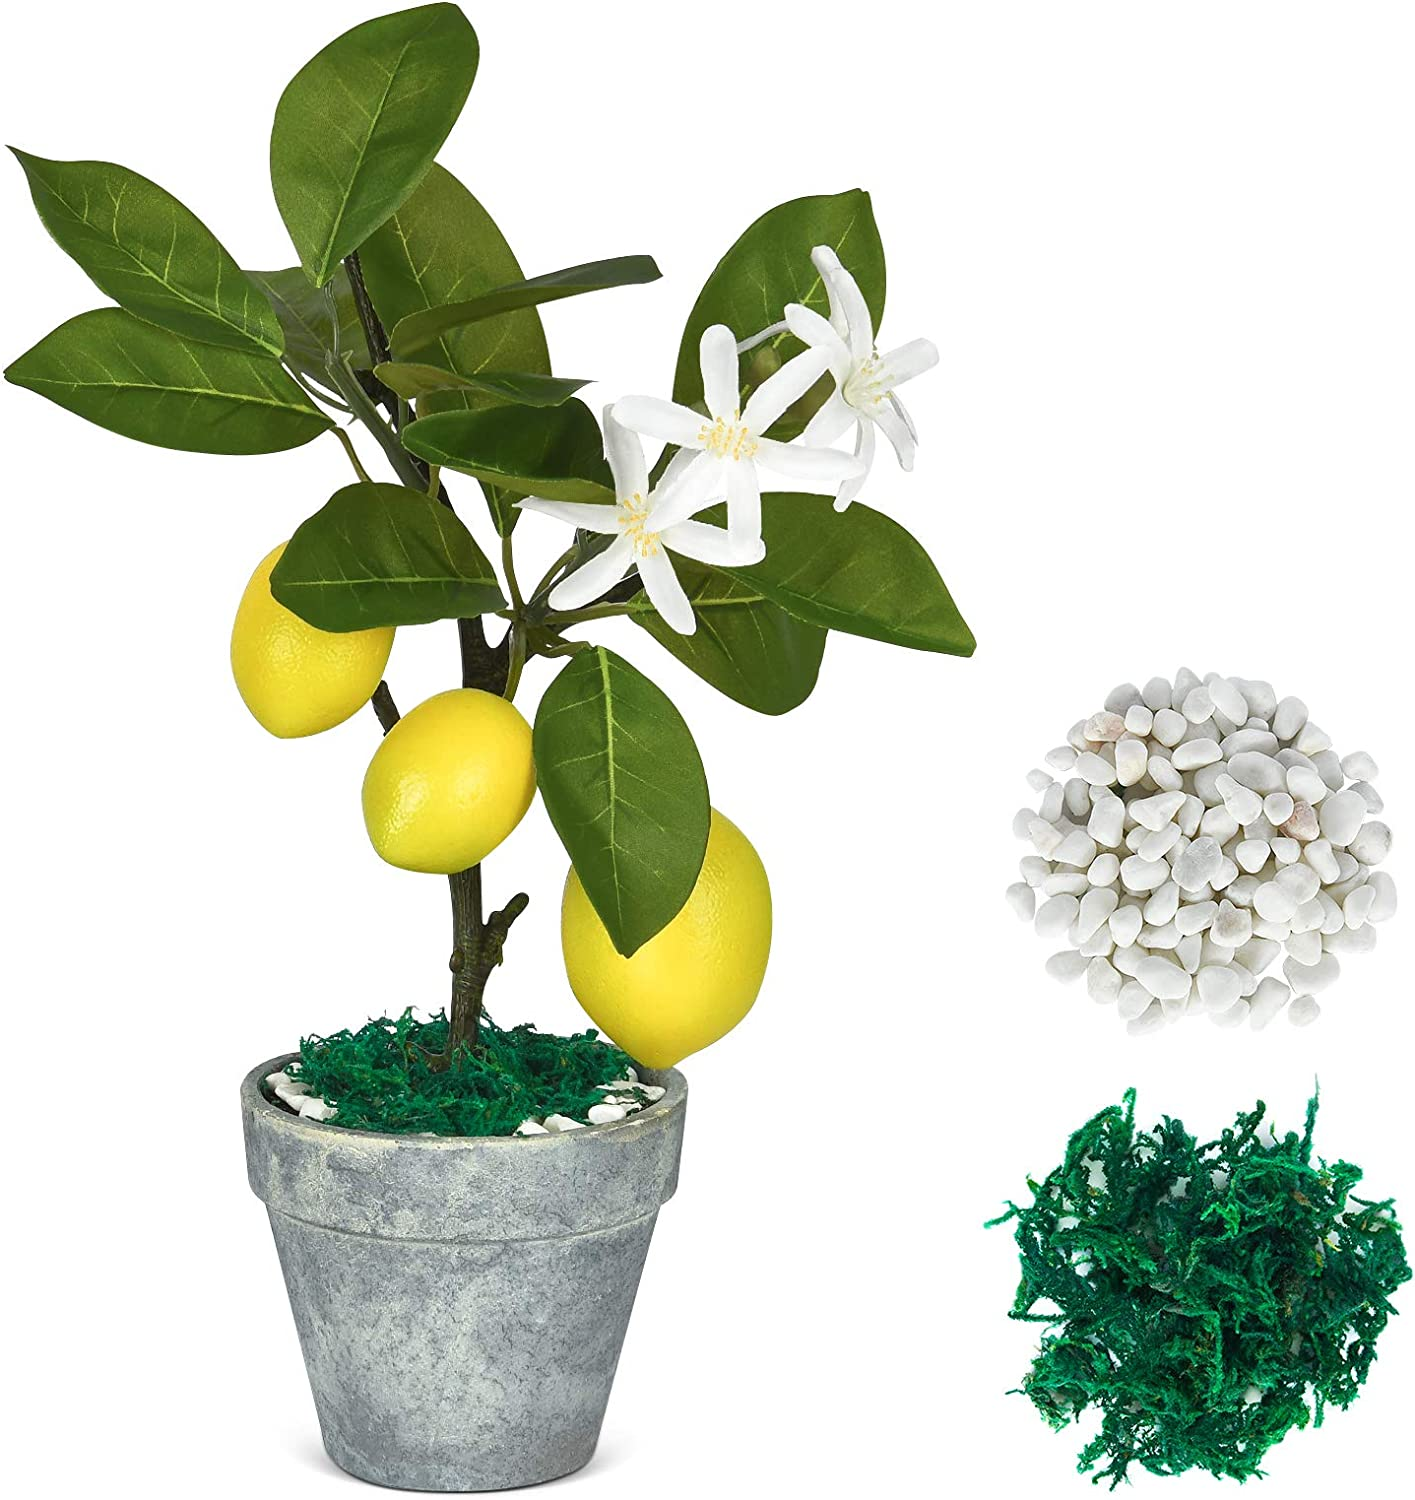 Shiny Flower Artificial Lemon Tree Topiary, Mini Potted Lemon Tree, Potted Fake Plants for Home Kitchen Office Table Decoration and Accessories